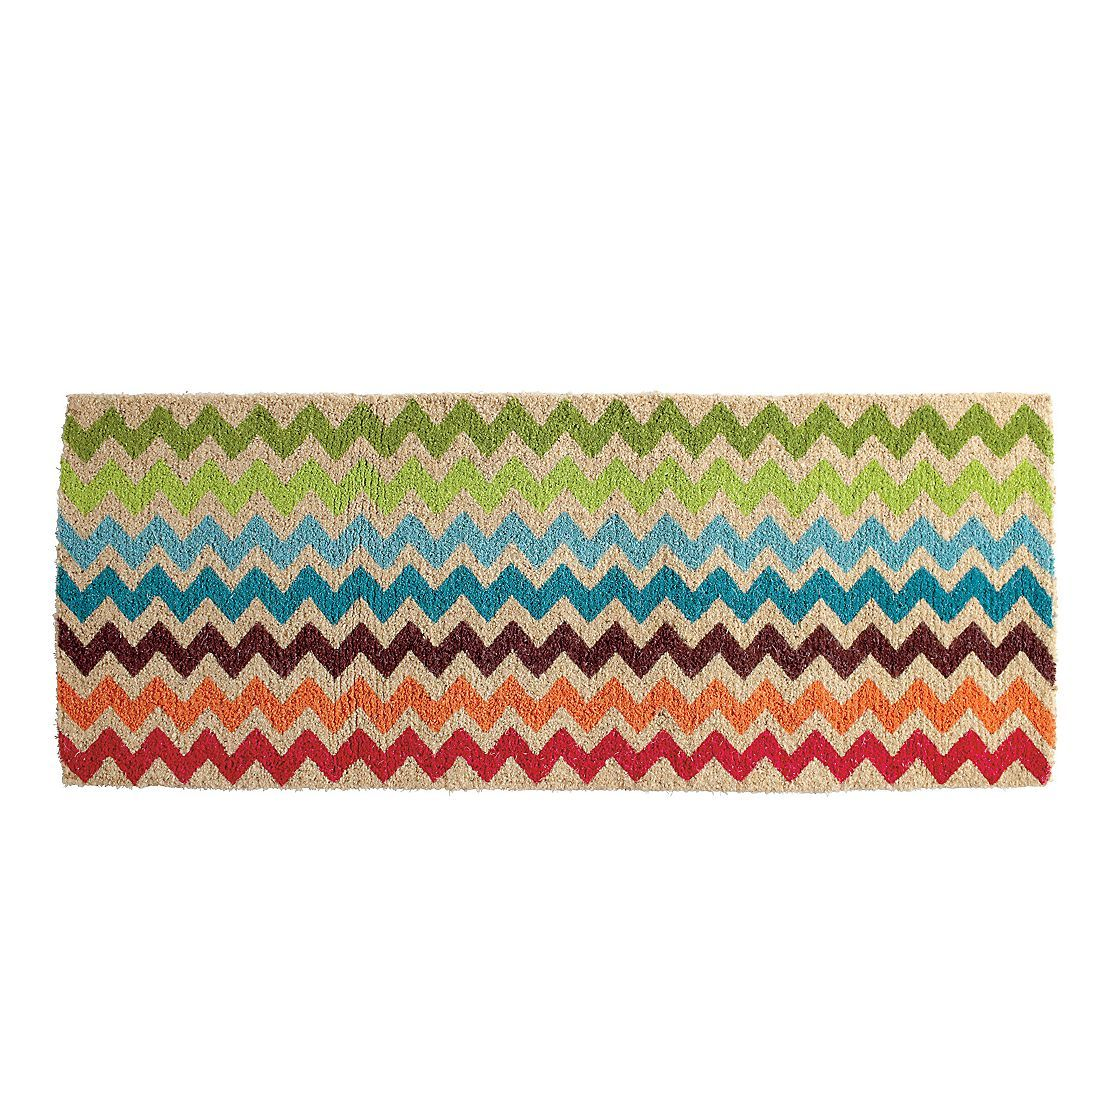 News From Good Goods Co Bungalows: Coir, Patio Style